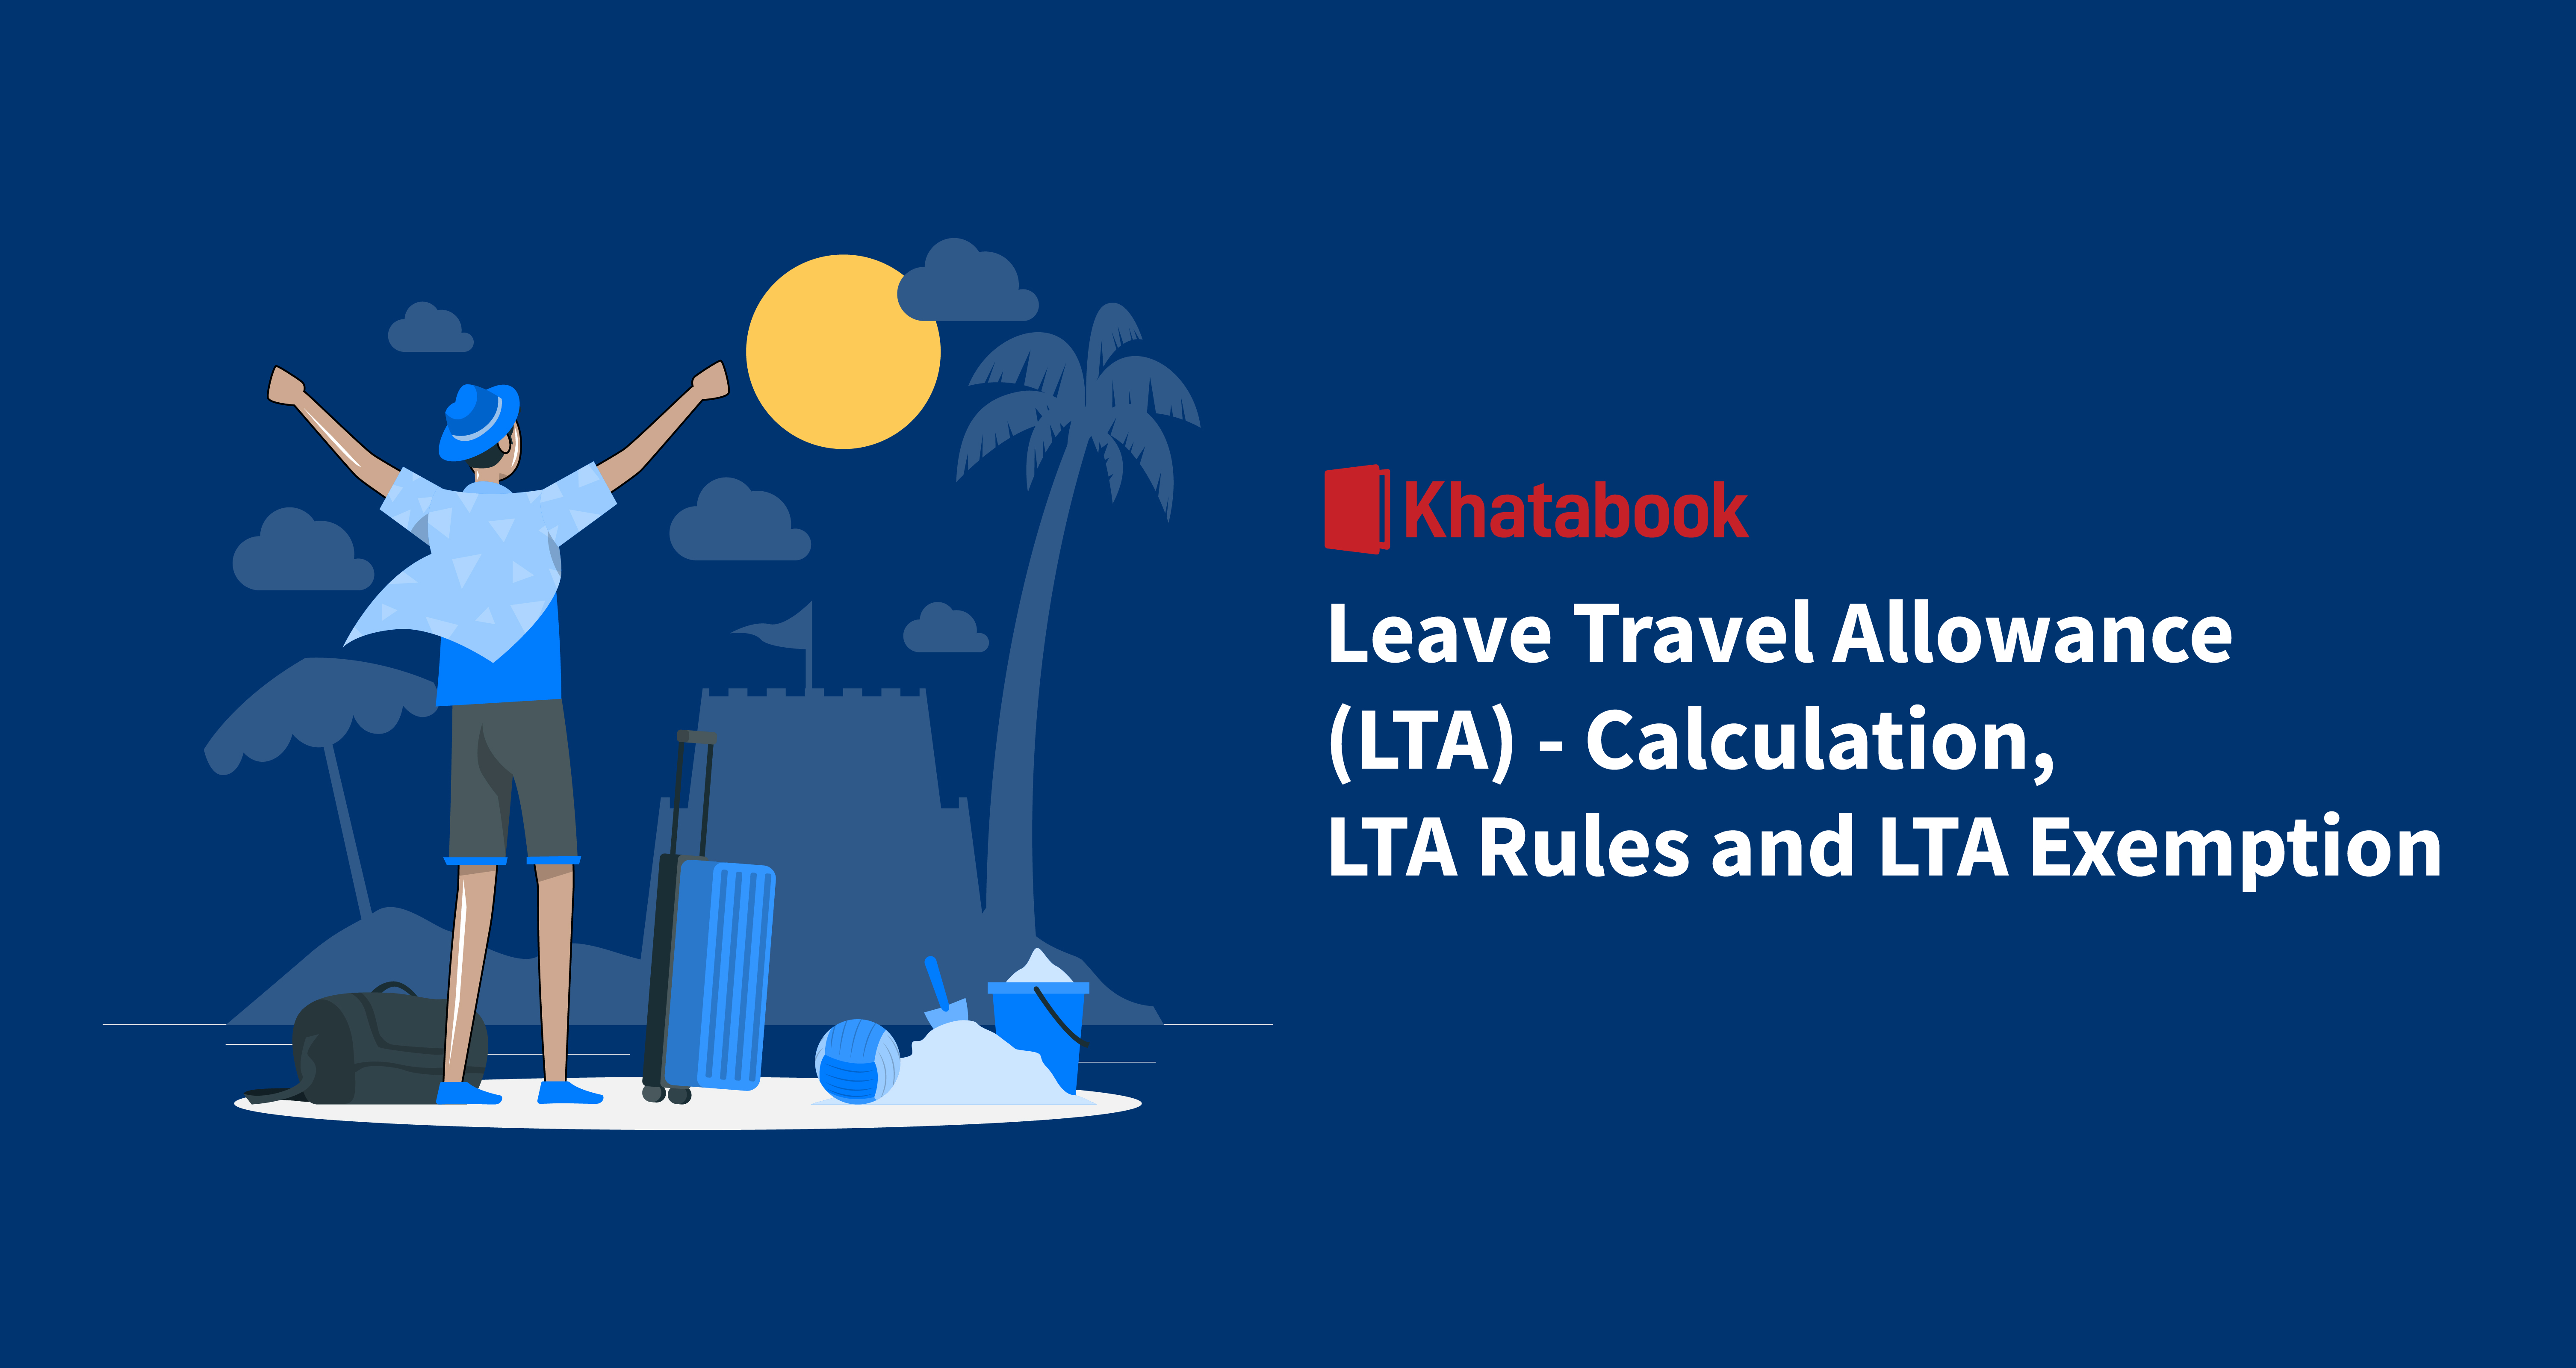 Leave Travel Allowance Its Calculation, Rules and Exemption